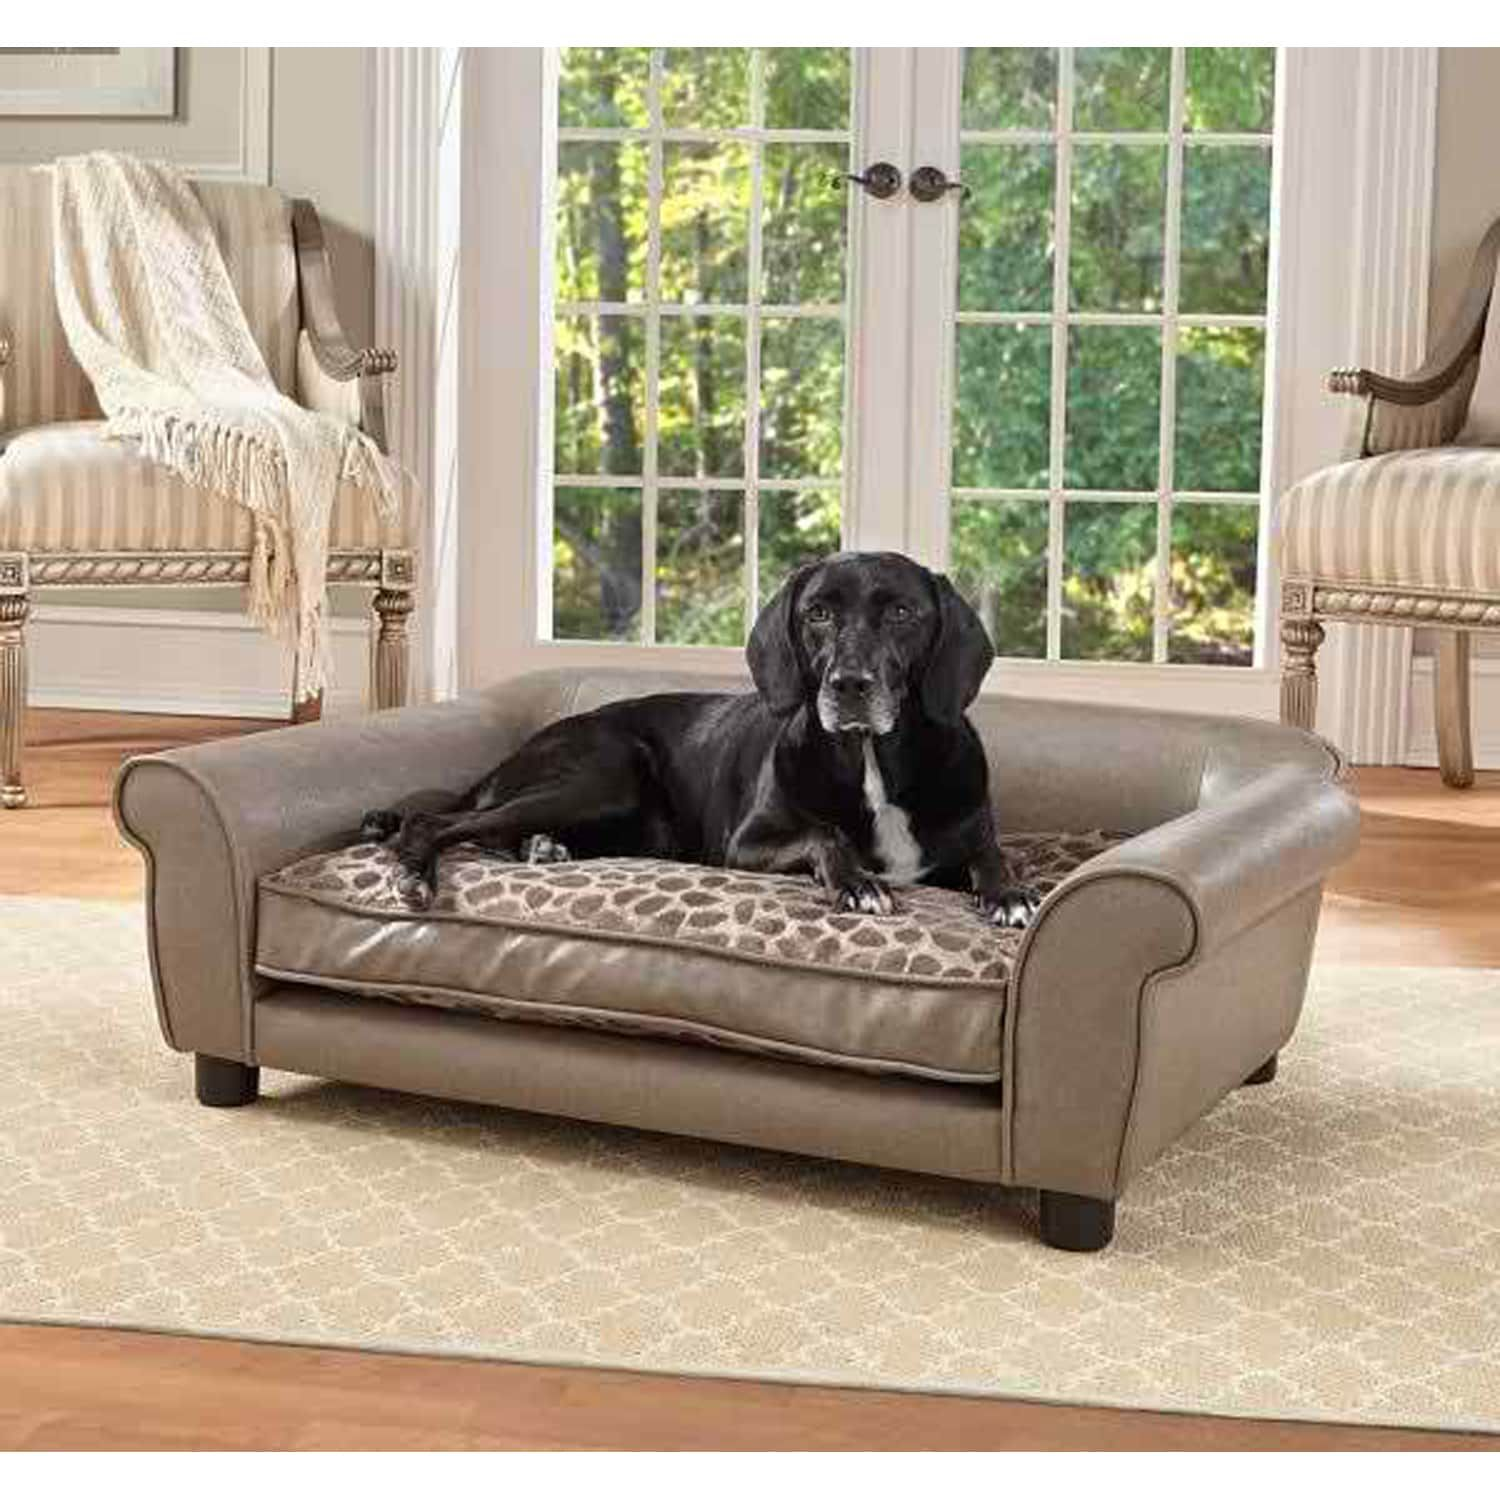 Rockwell Sofa Pet Bed Dog Sofa Bed Dog Cots Wood Dog